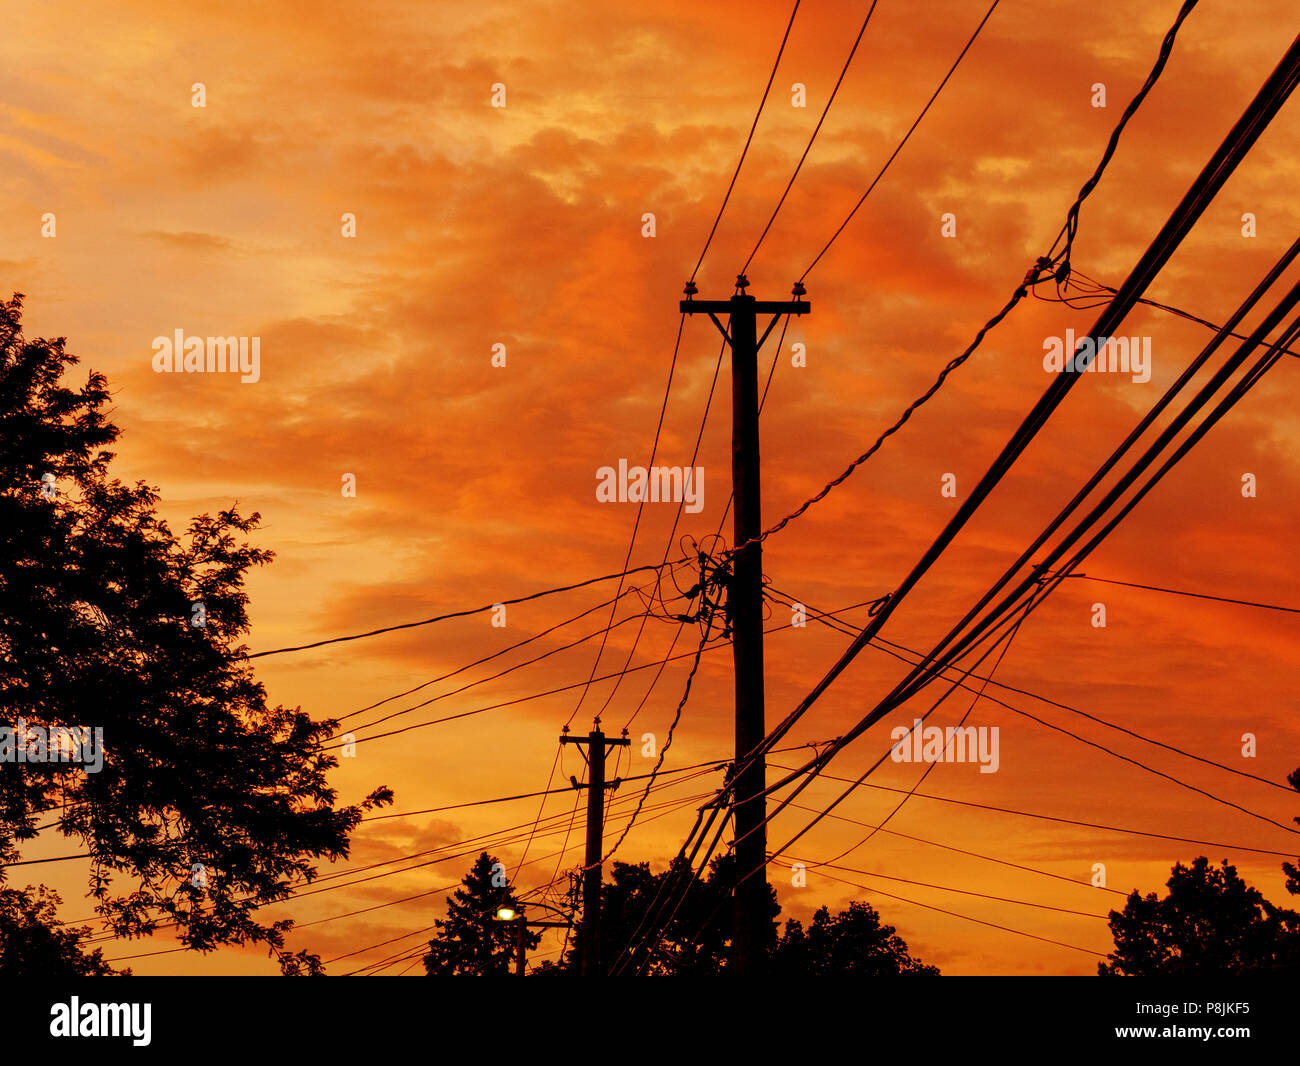 power-lines-and-colorful-sky-at-dusk-P8J